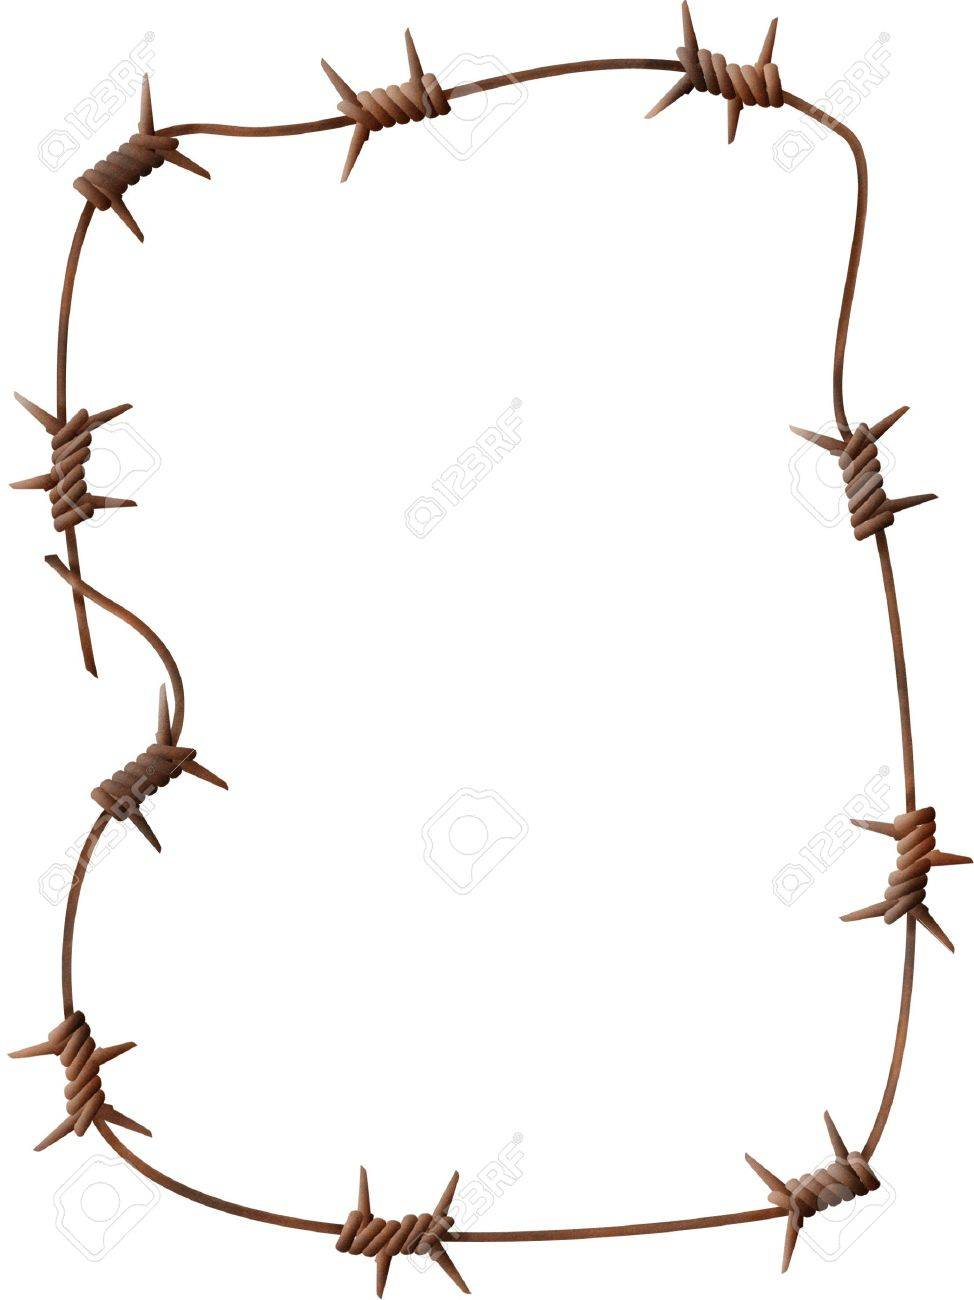 Frame - a rusty barbed wire on a white background Stock Photo - 907603